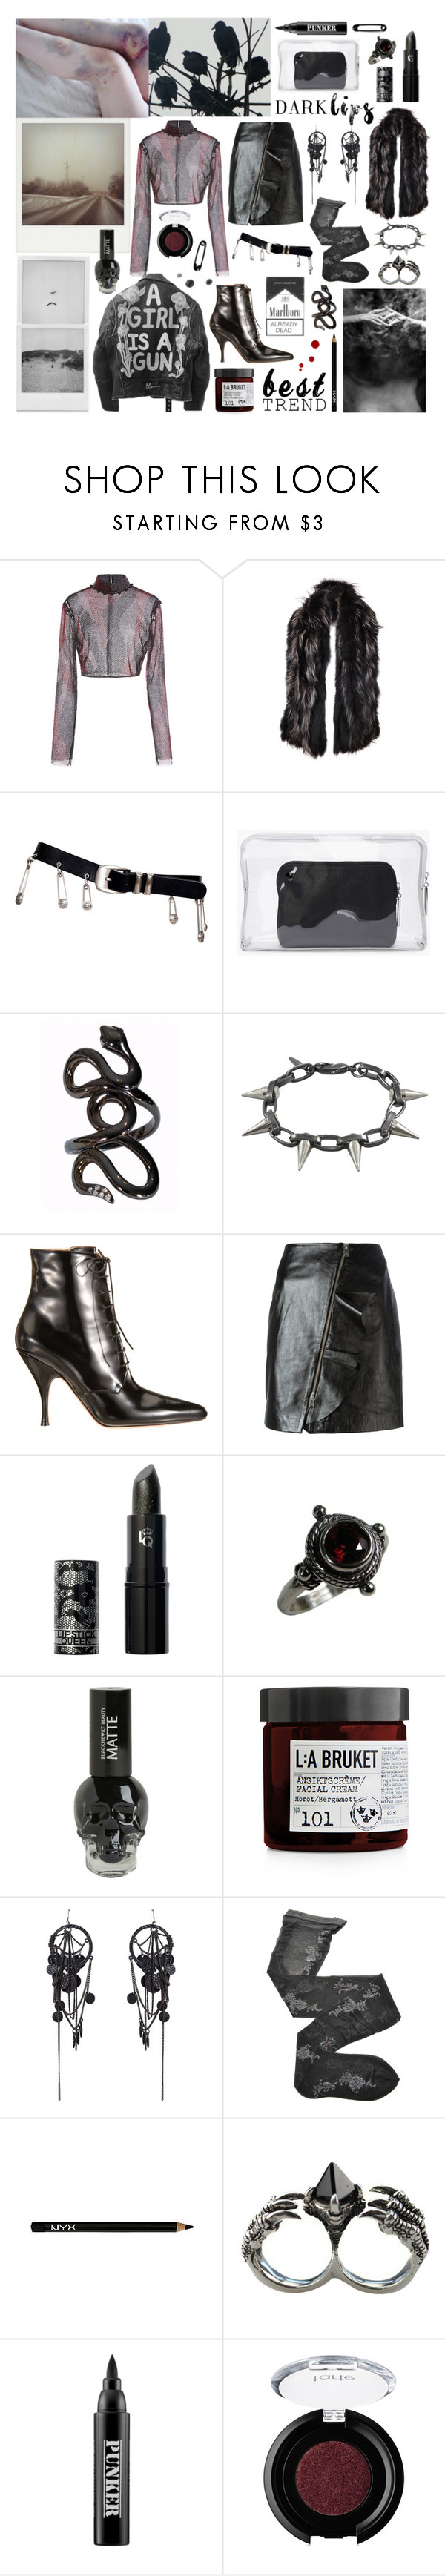 """""""I know about what you did and I wanna scream the truth"""" by nothingisnormal ❤ liked on Polyvore featuring Prabal Gurung, Gucci, Versace, 3.1 Phillip Lim, Polaroid, Repossi, Joomi Lim, Rochas, IRO and Lipstick Queen"""